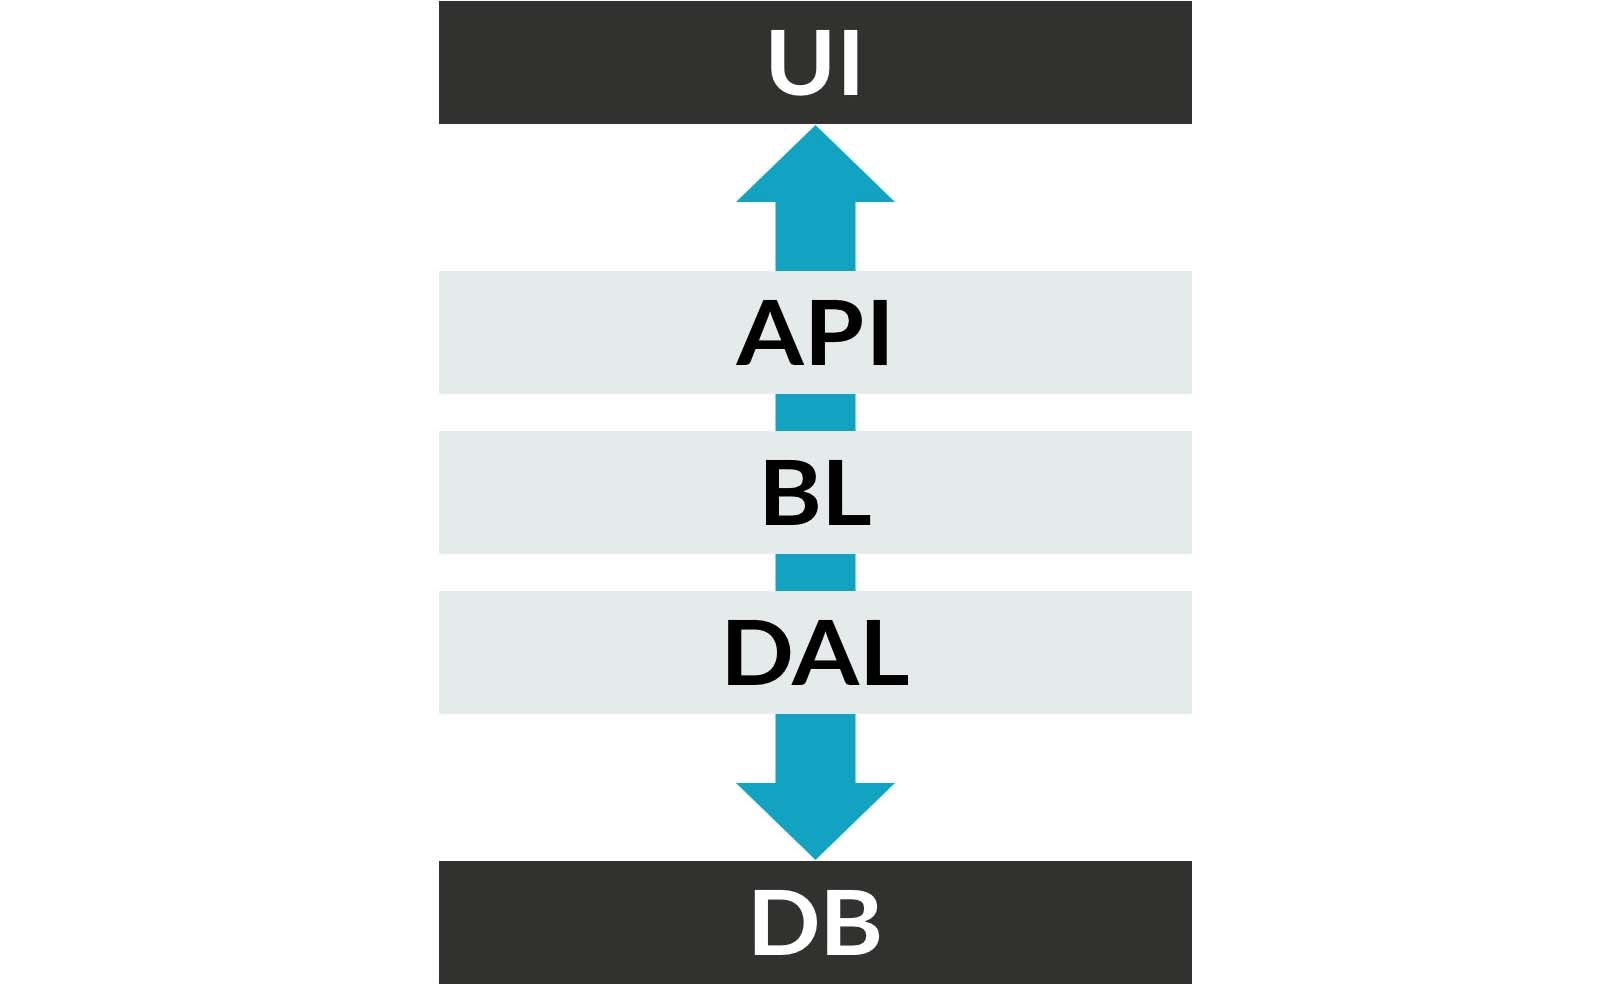 Coupling - from the UI to the DB